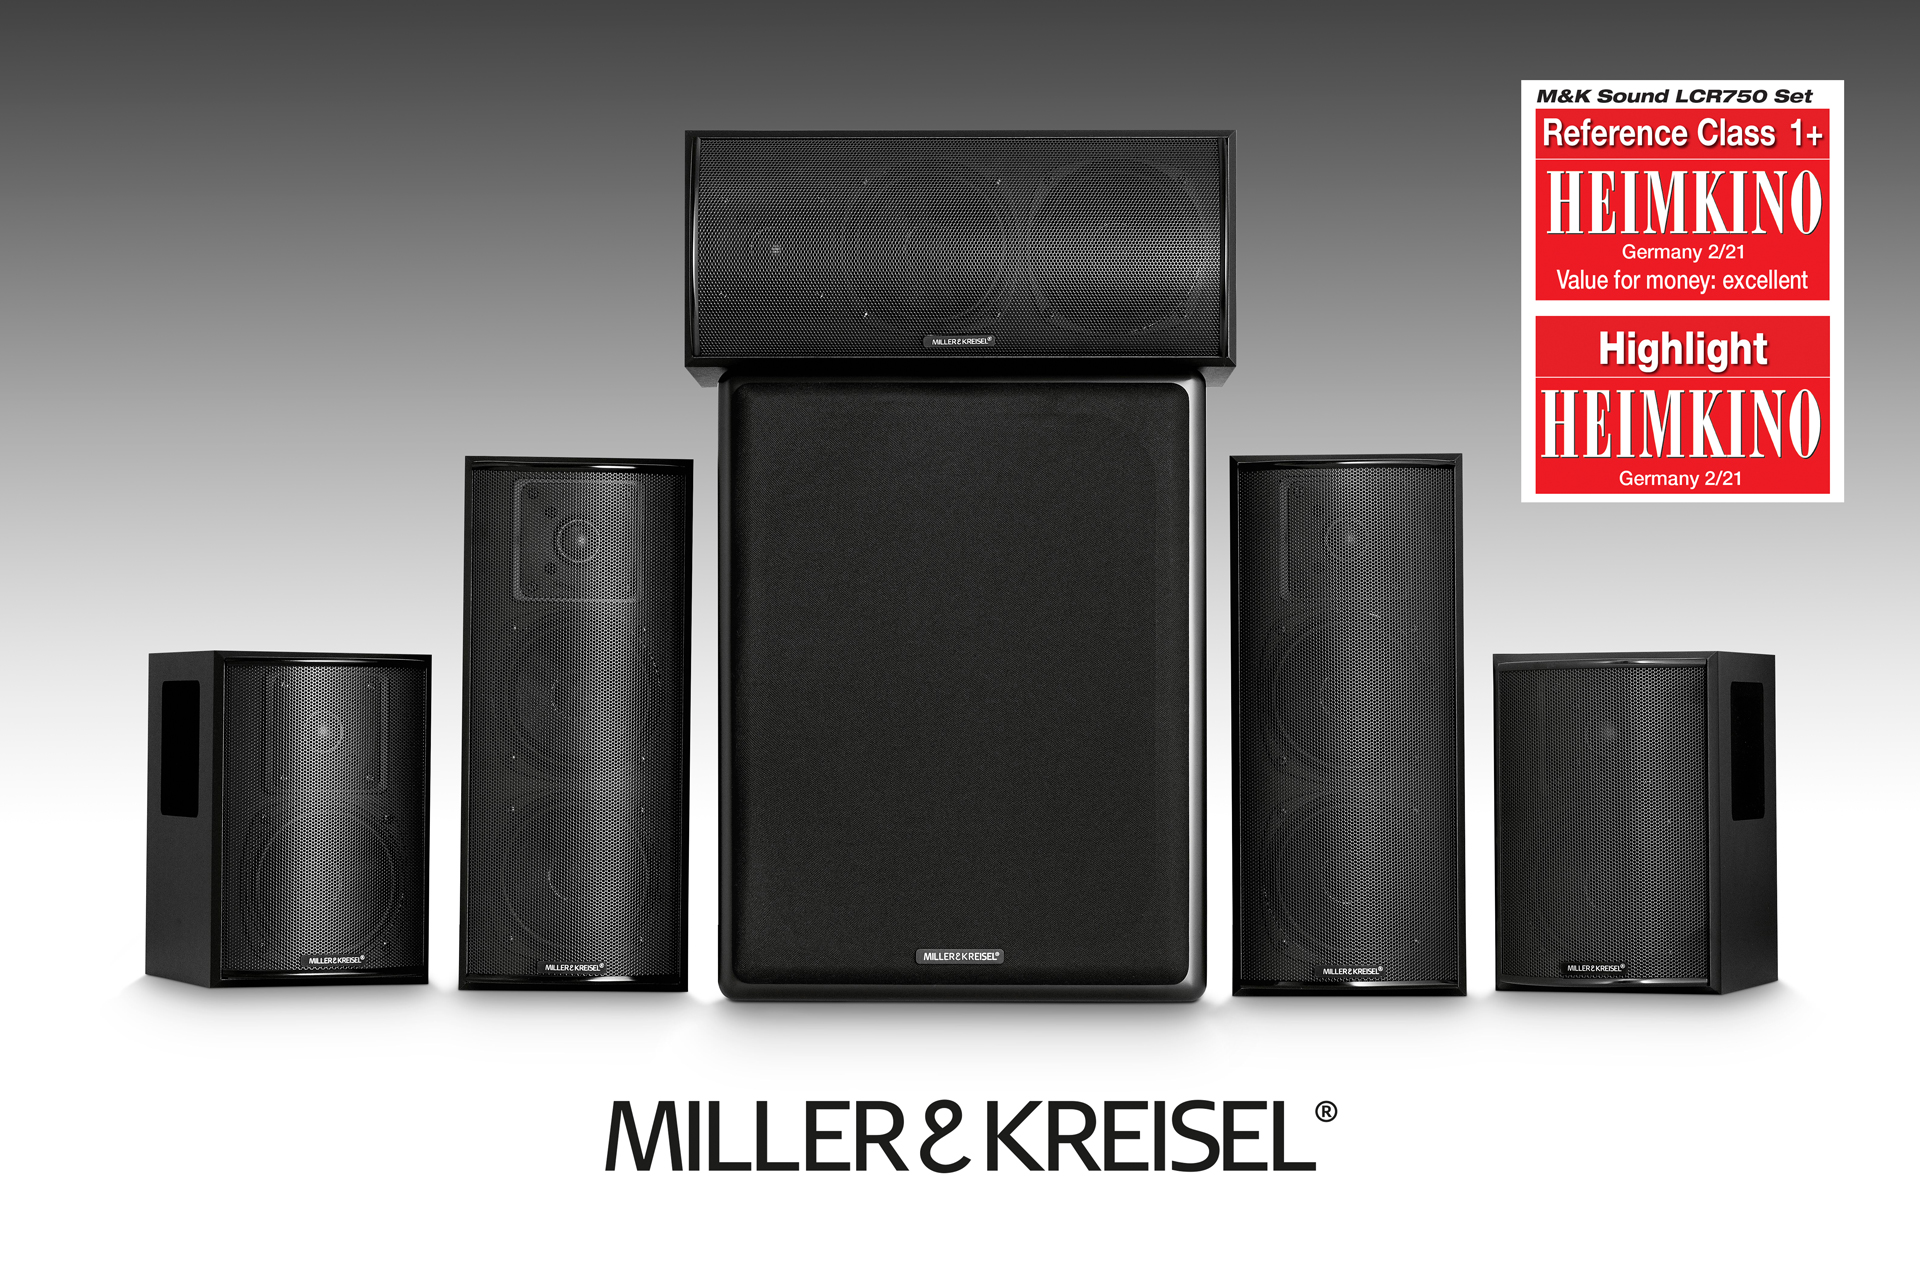 Miller & Kreisel 750 Series 5.1 Home Theater System